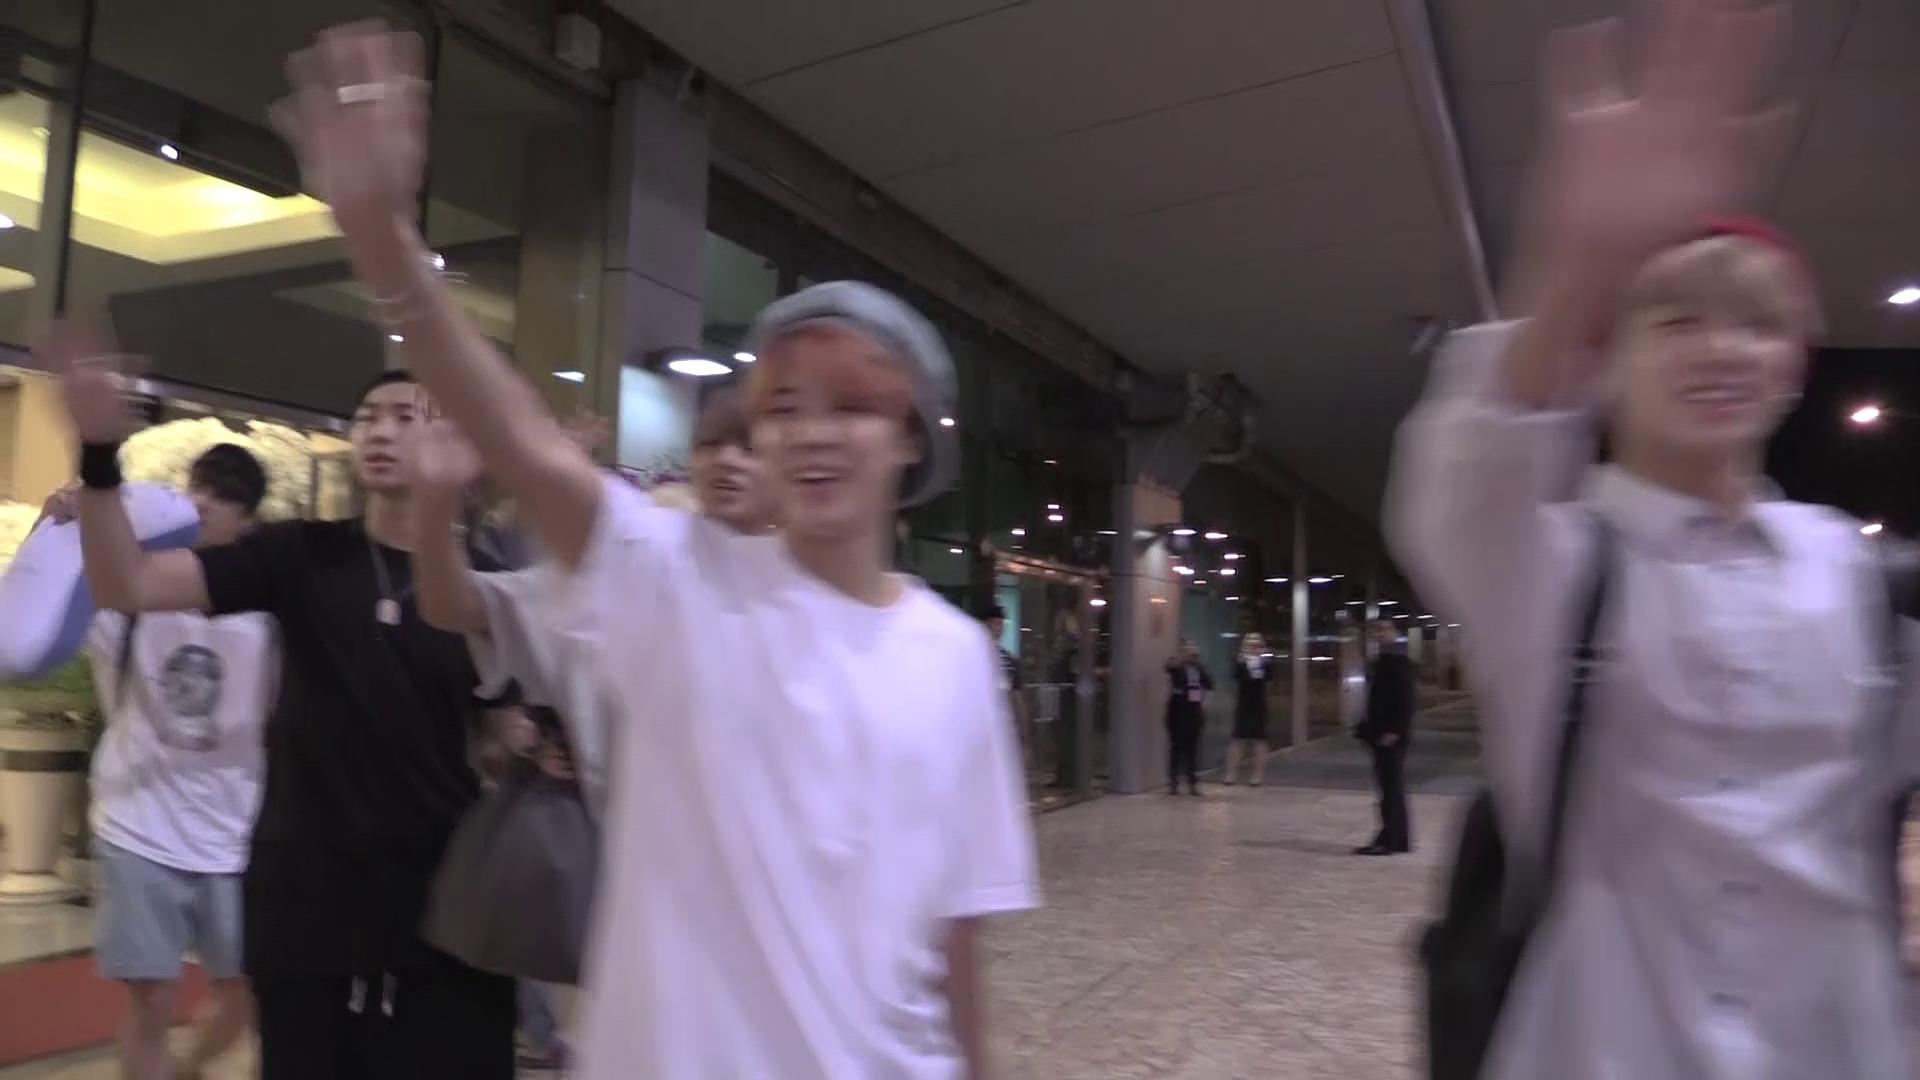 [Vehind] BTS in Thailand with V! - DAY 1